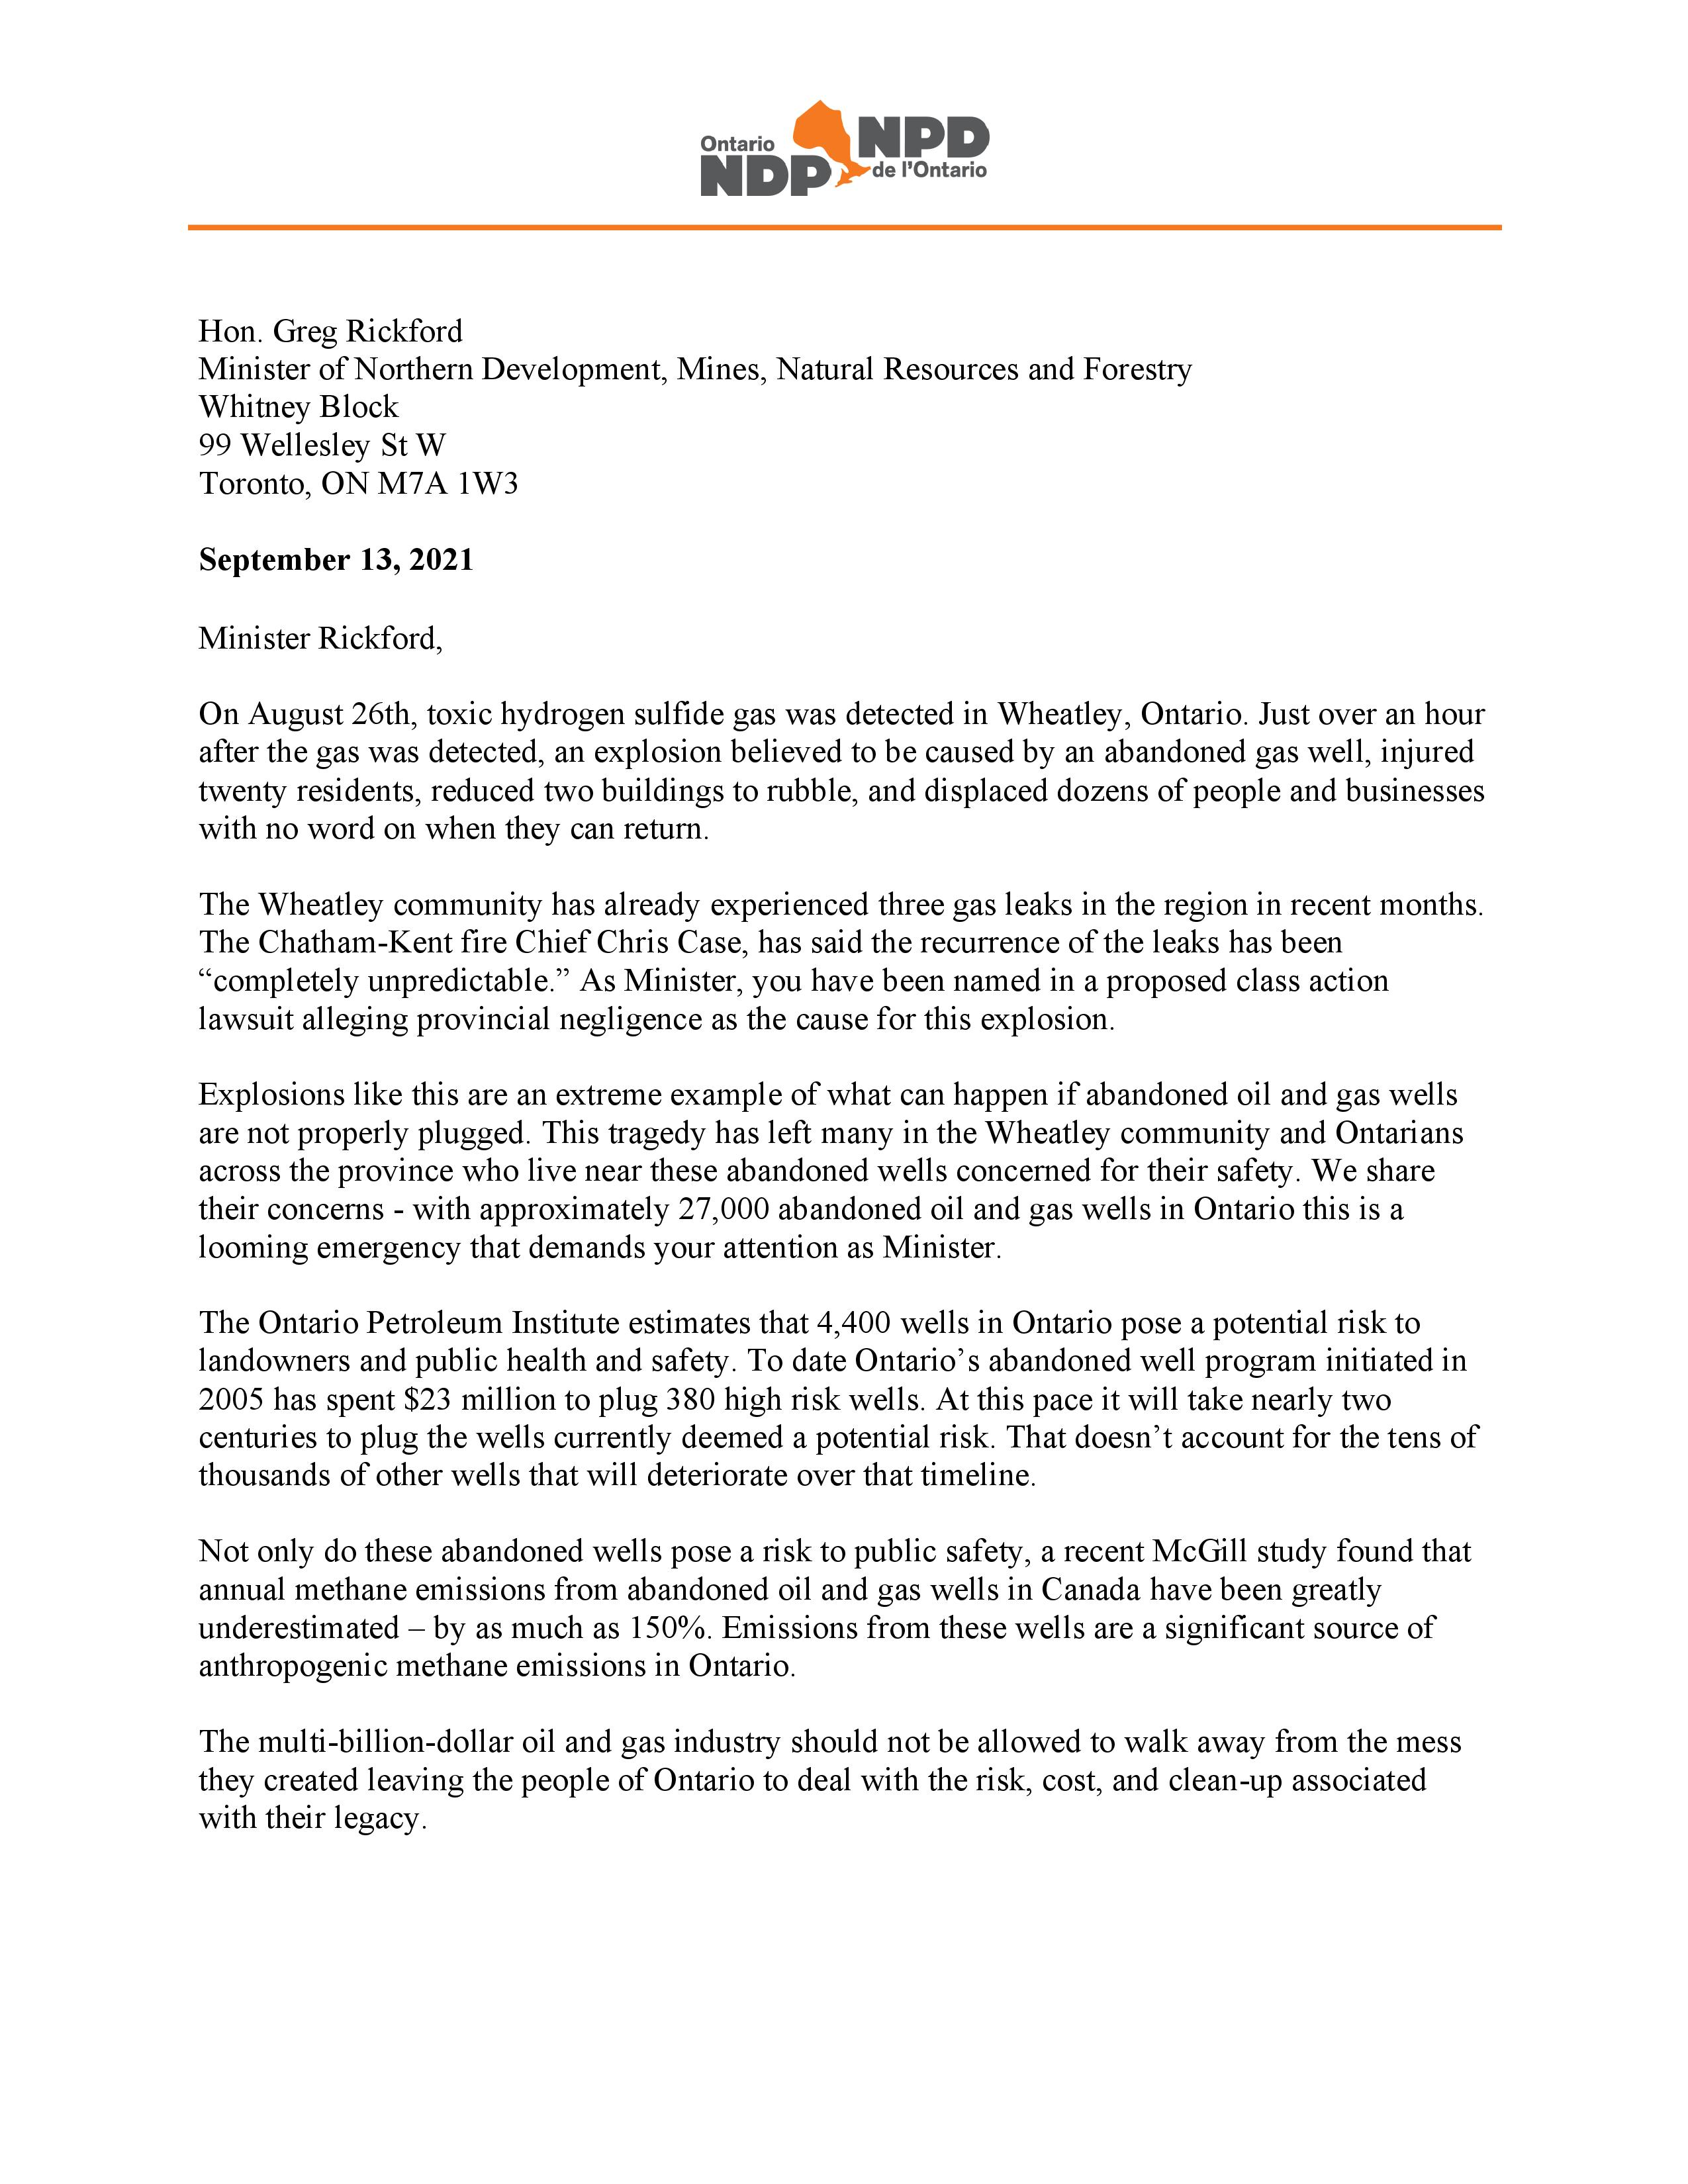 Wheatley_Explosion_-_Letter_to_Minister_Rickford-page-001.jpg